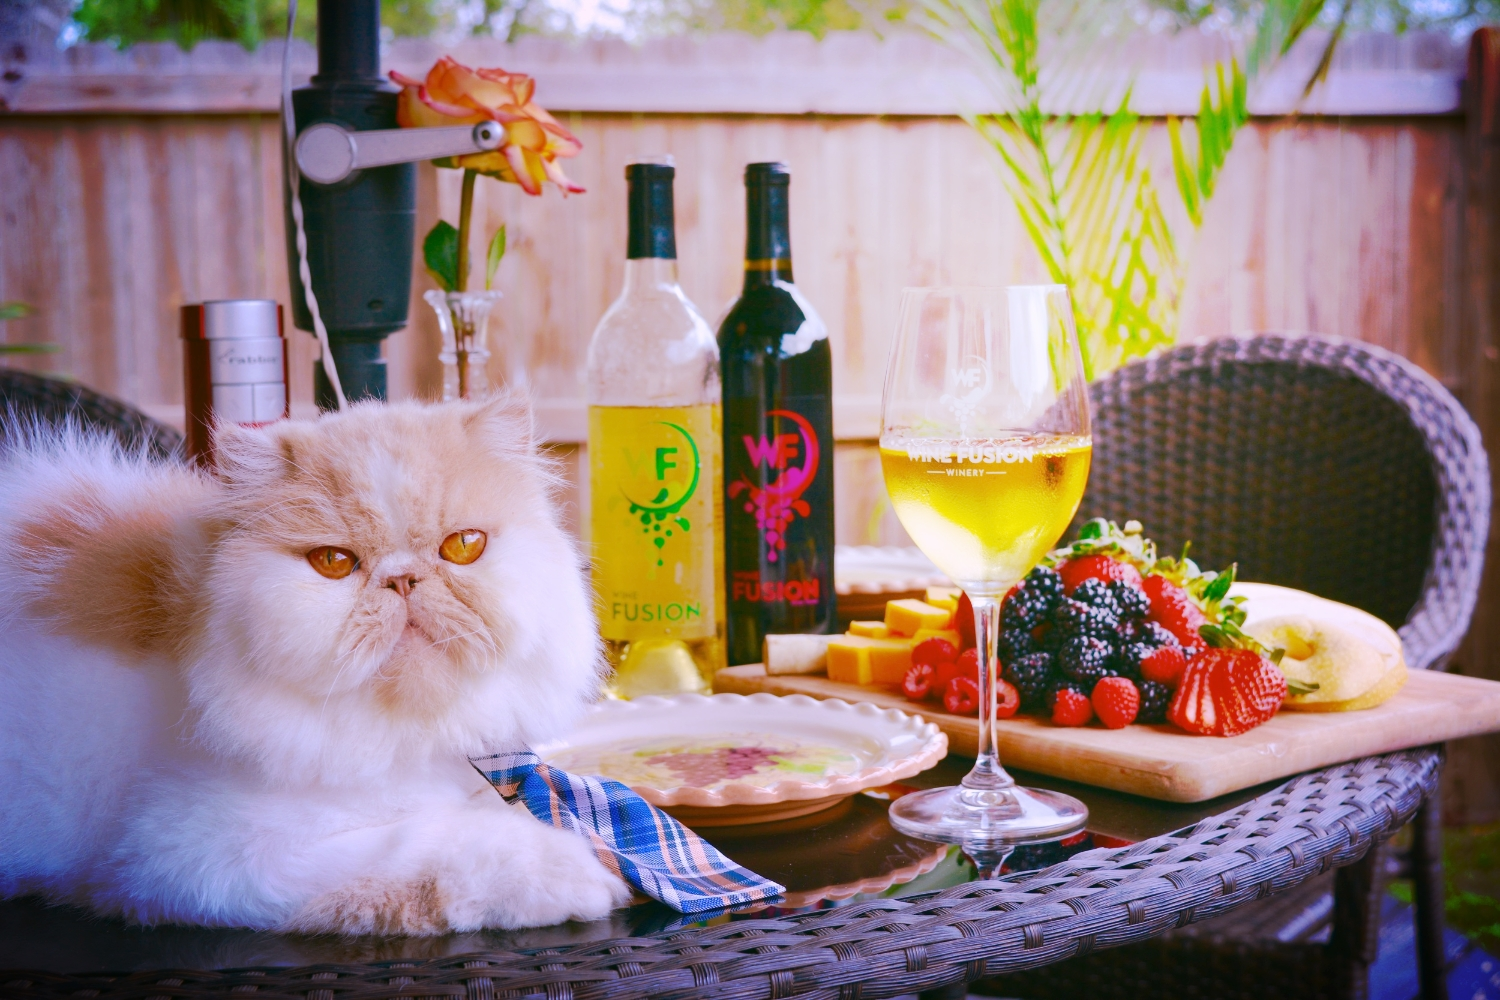 My cat and I have the same taste in wine.